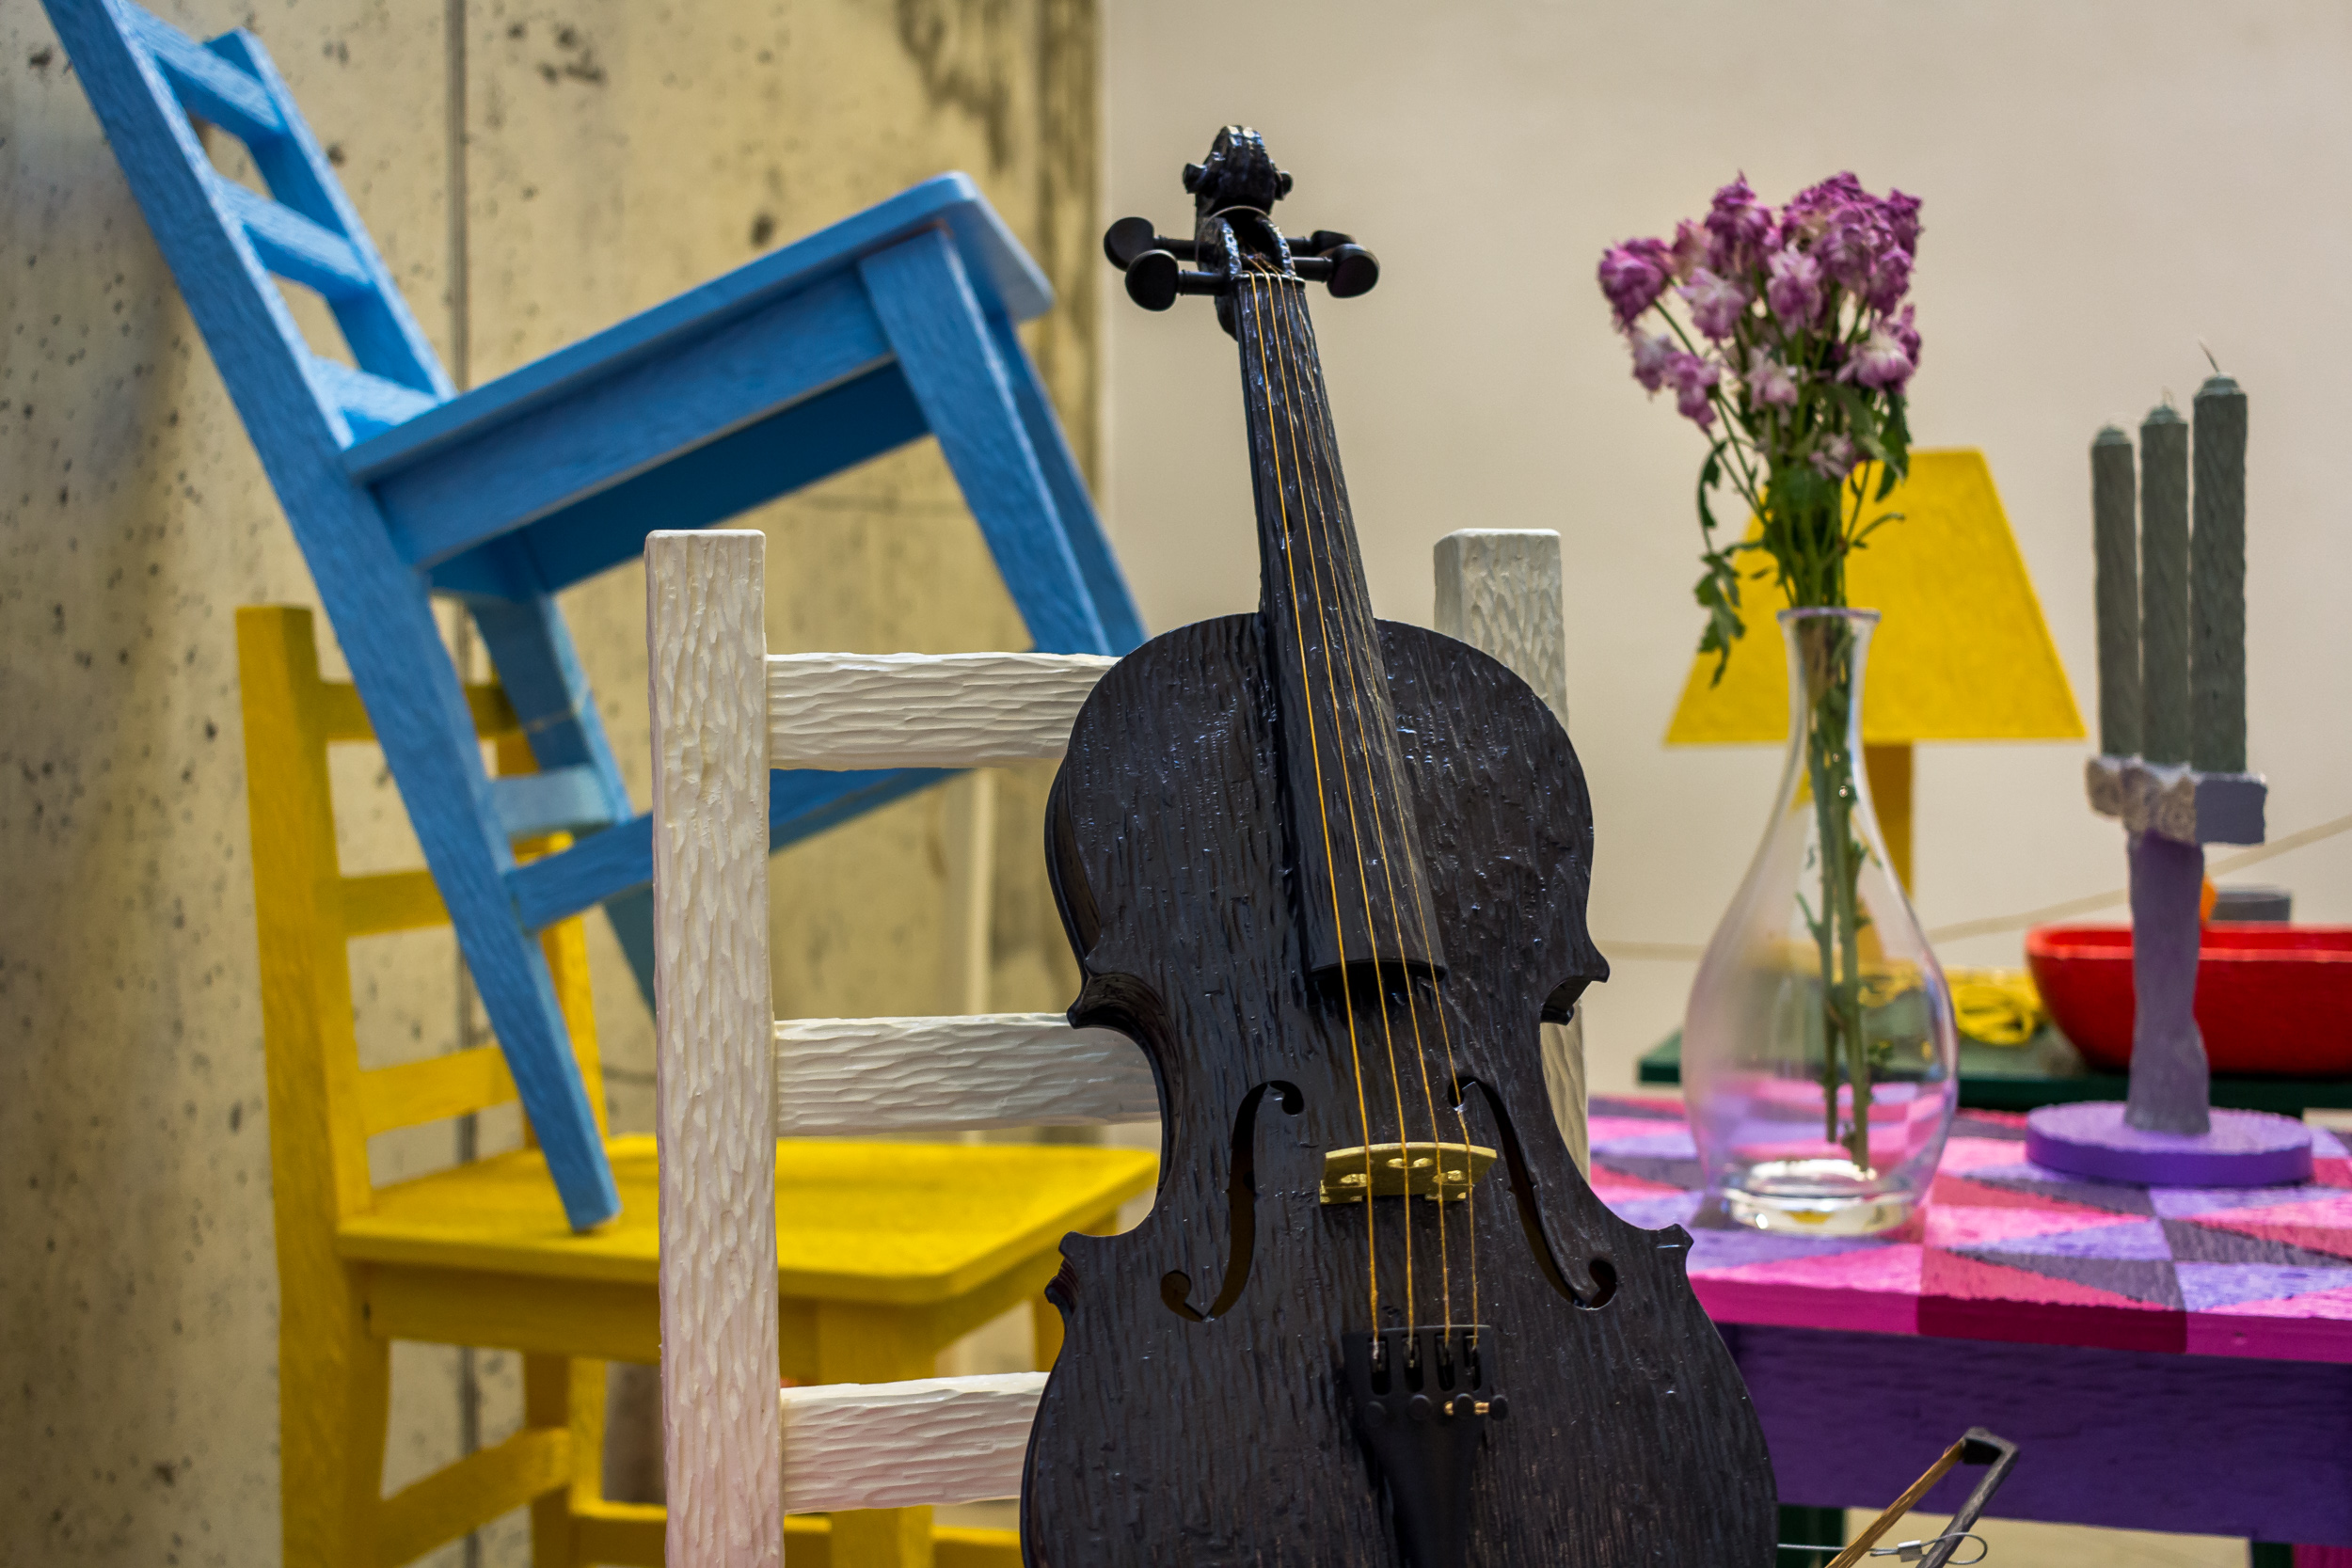 Violin and Chairs